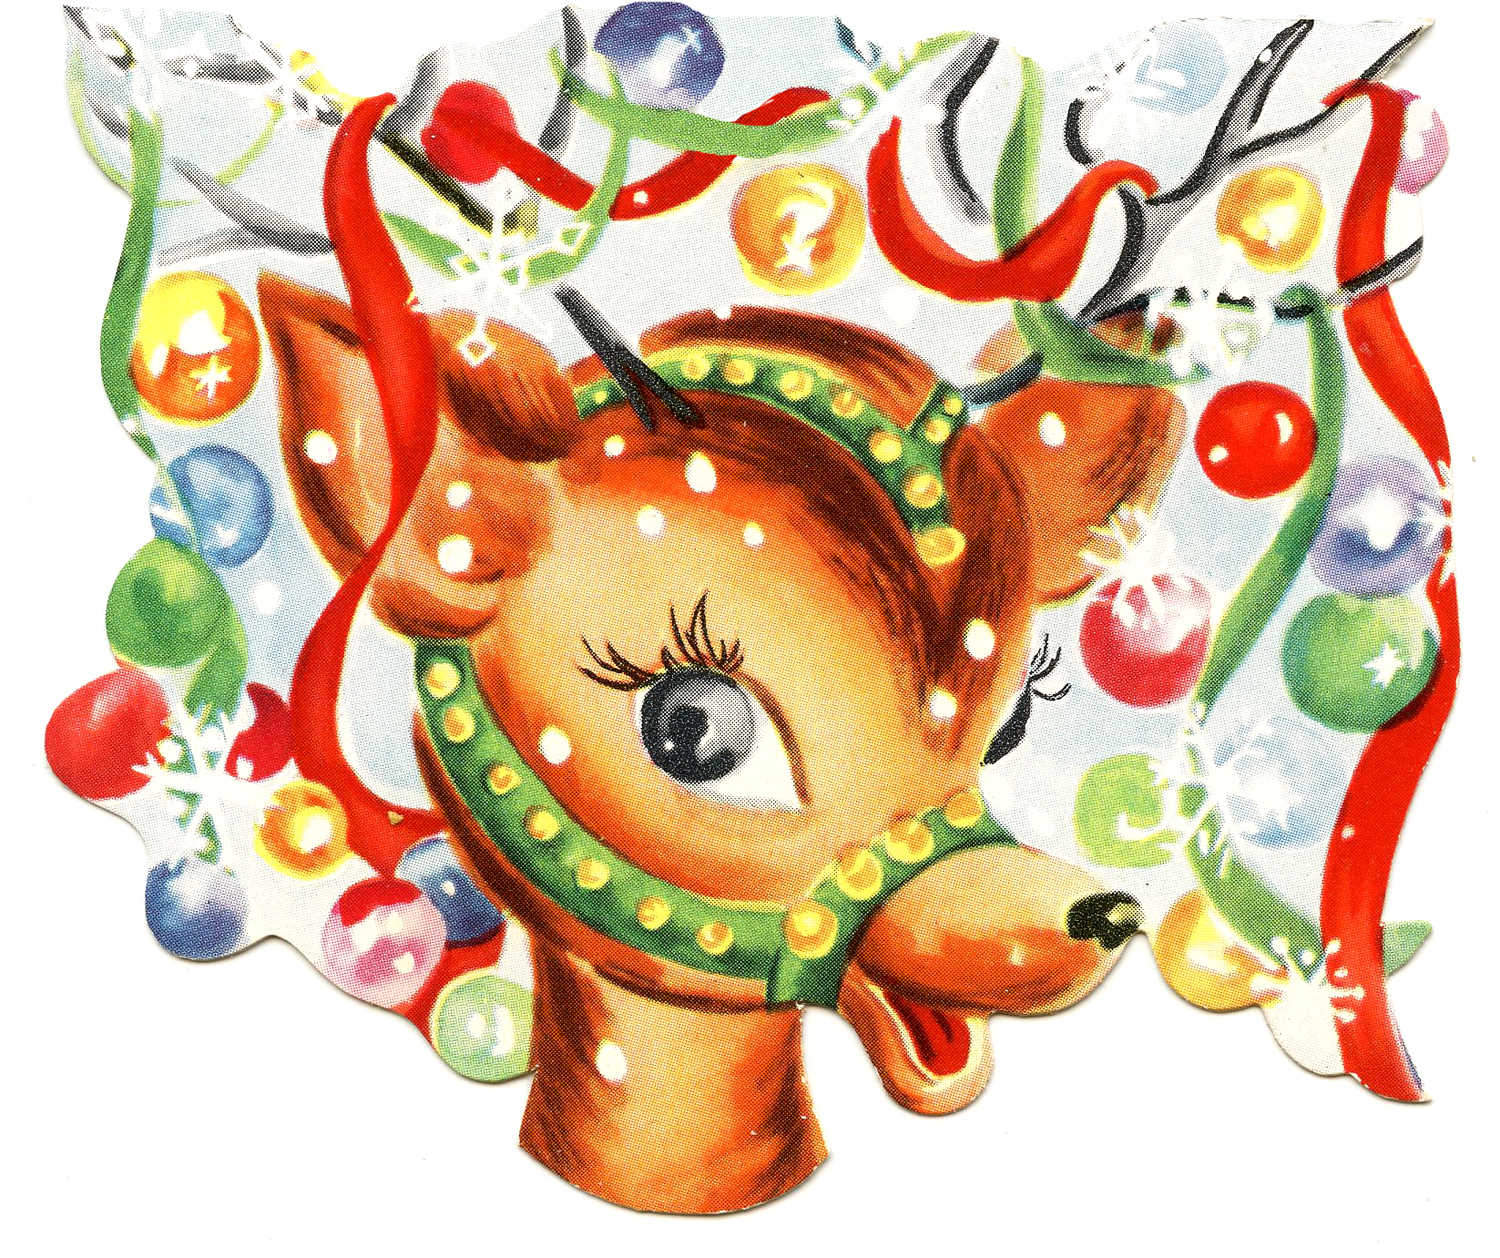 Retro Christmas Image  Colorful Cute Reindeer  The Graphics Fairy